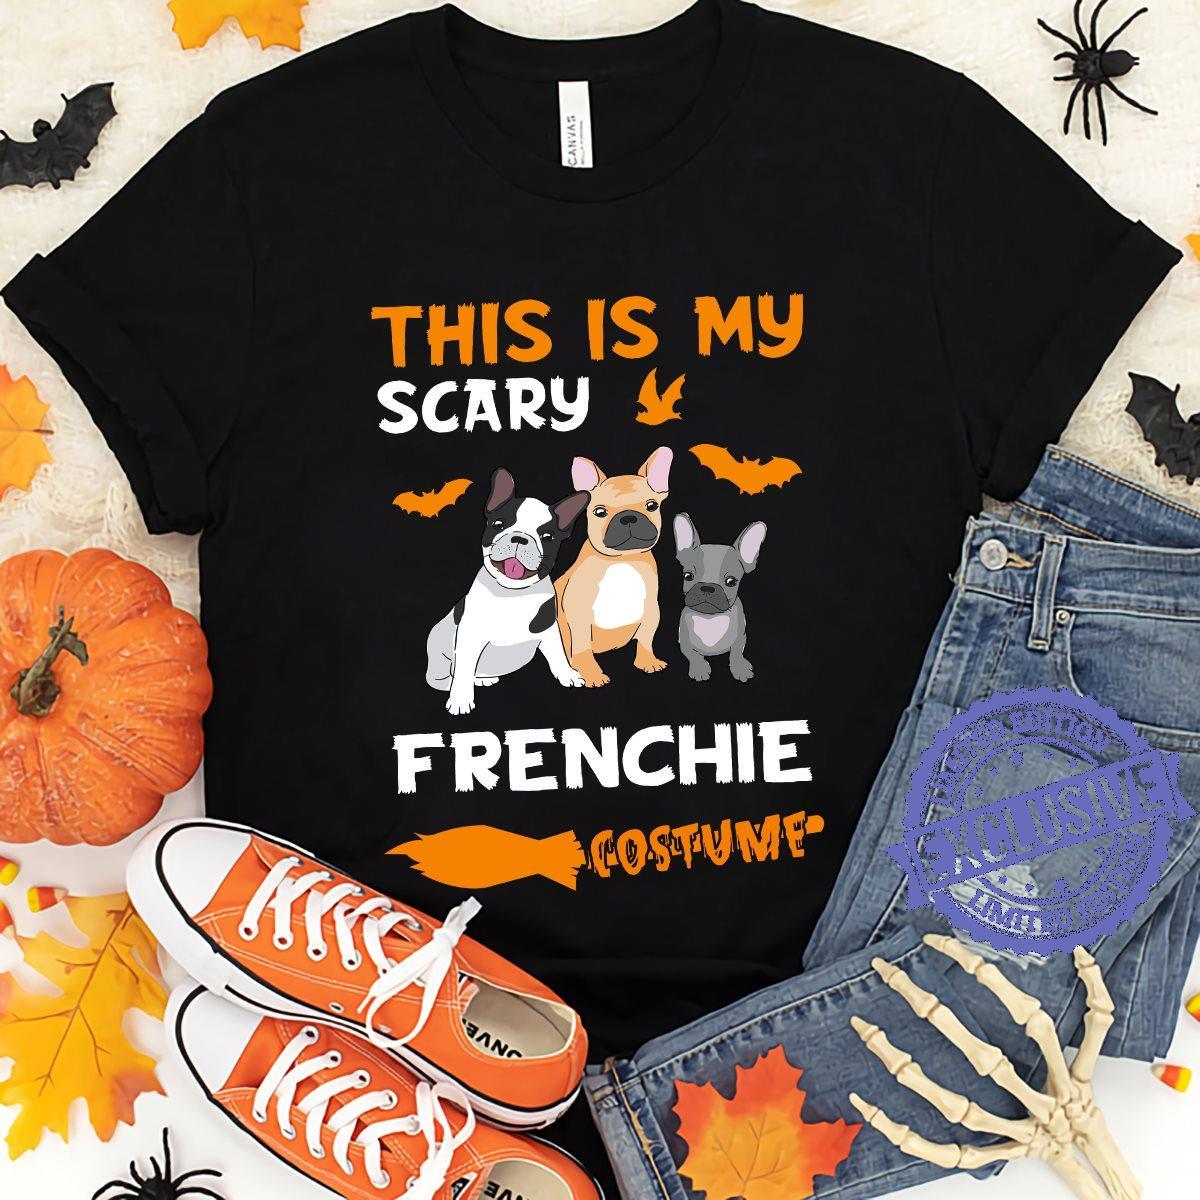 This is my crazy frenchie costume shirt